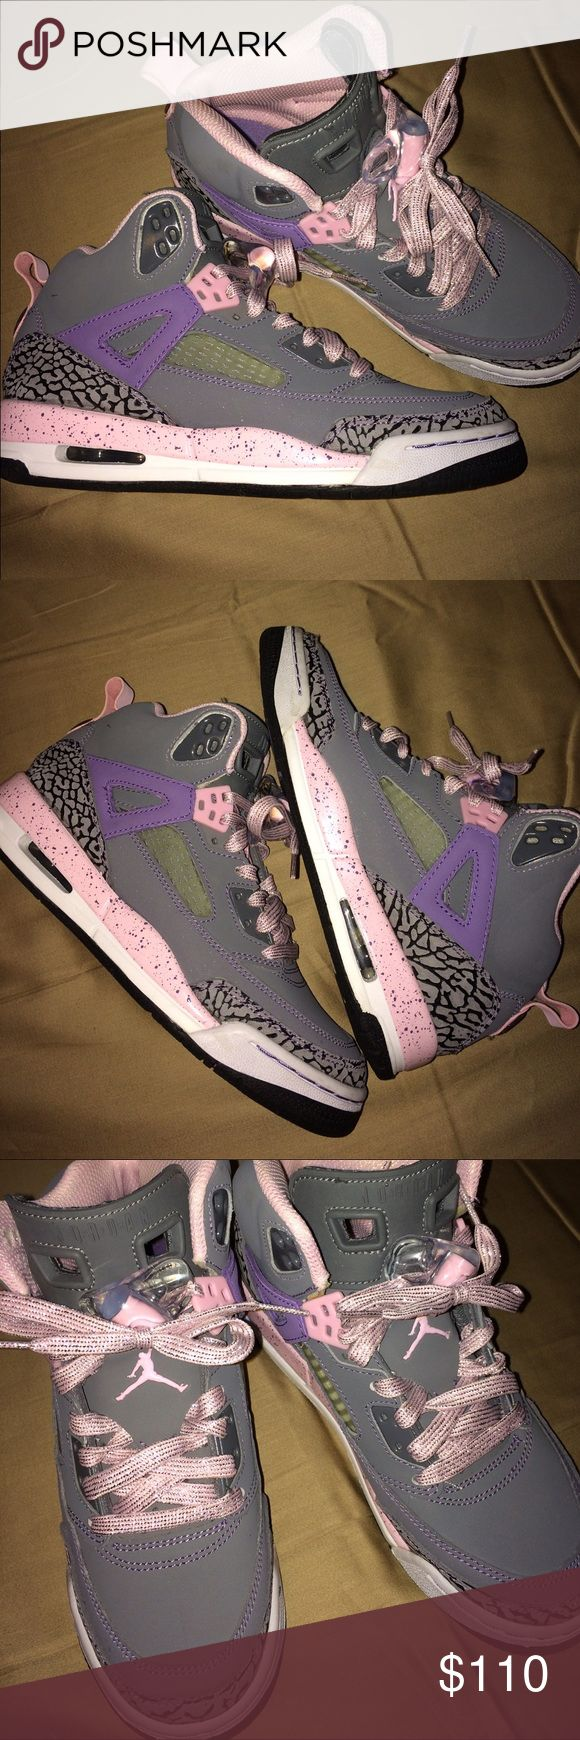 Authentic Jordan Spizike's EUC. Only worn twice. Very excellent deal on these shoes that are very expensive!! Great, great buy and very cute colors!! 🔥🔥 Jordan Shoes Sneakers